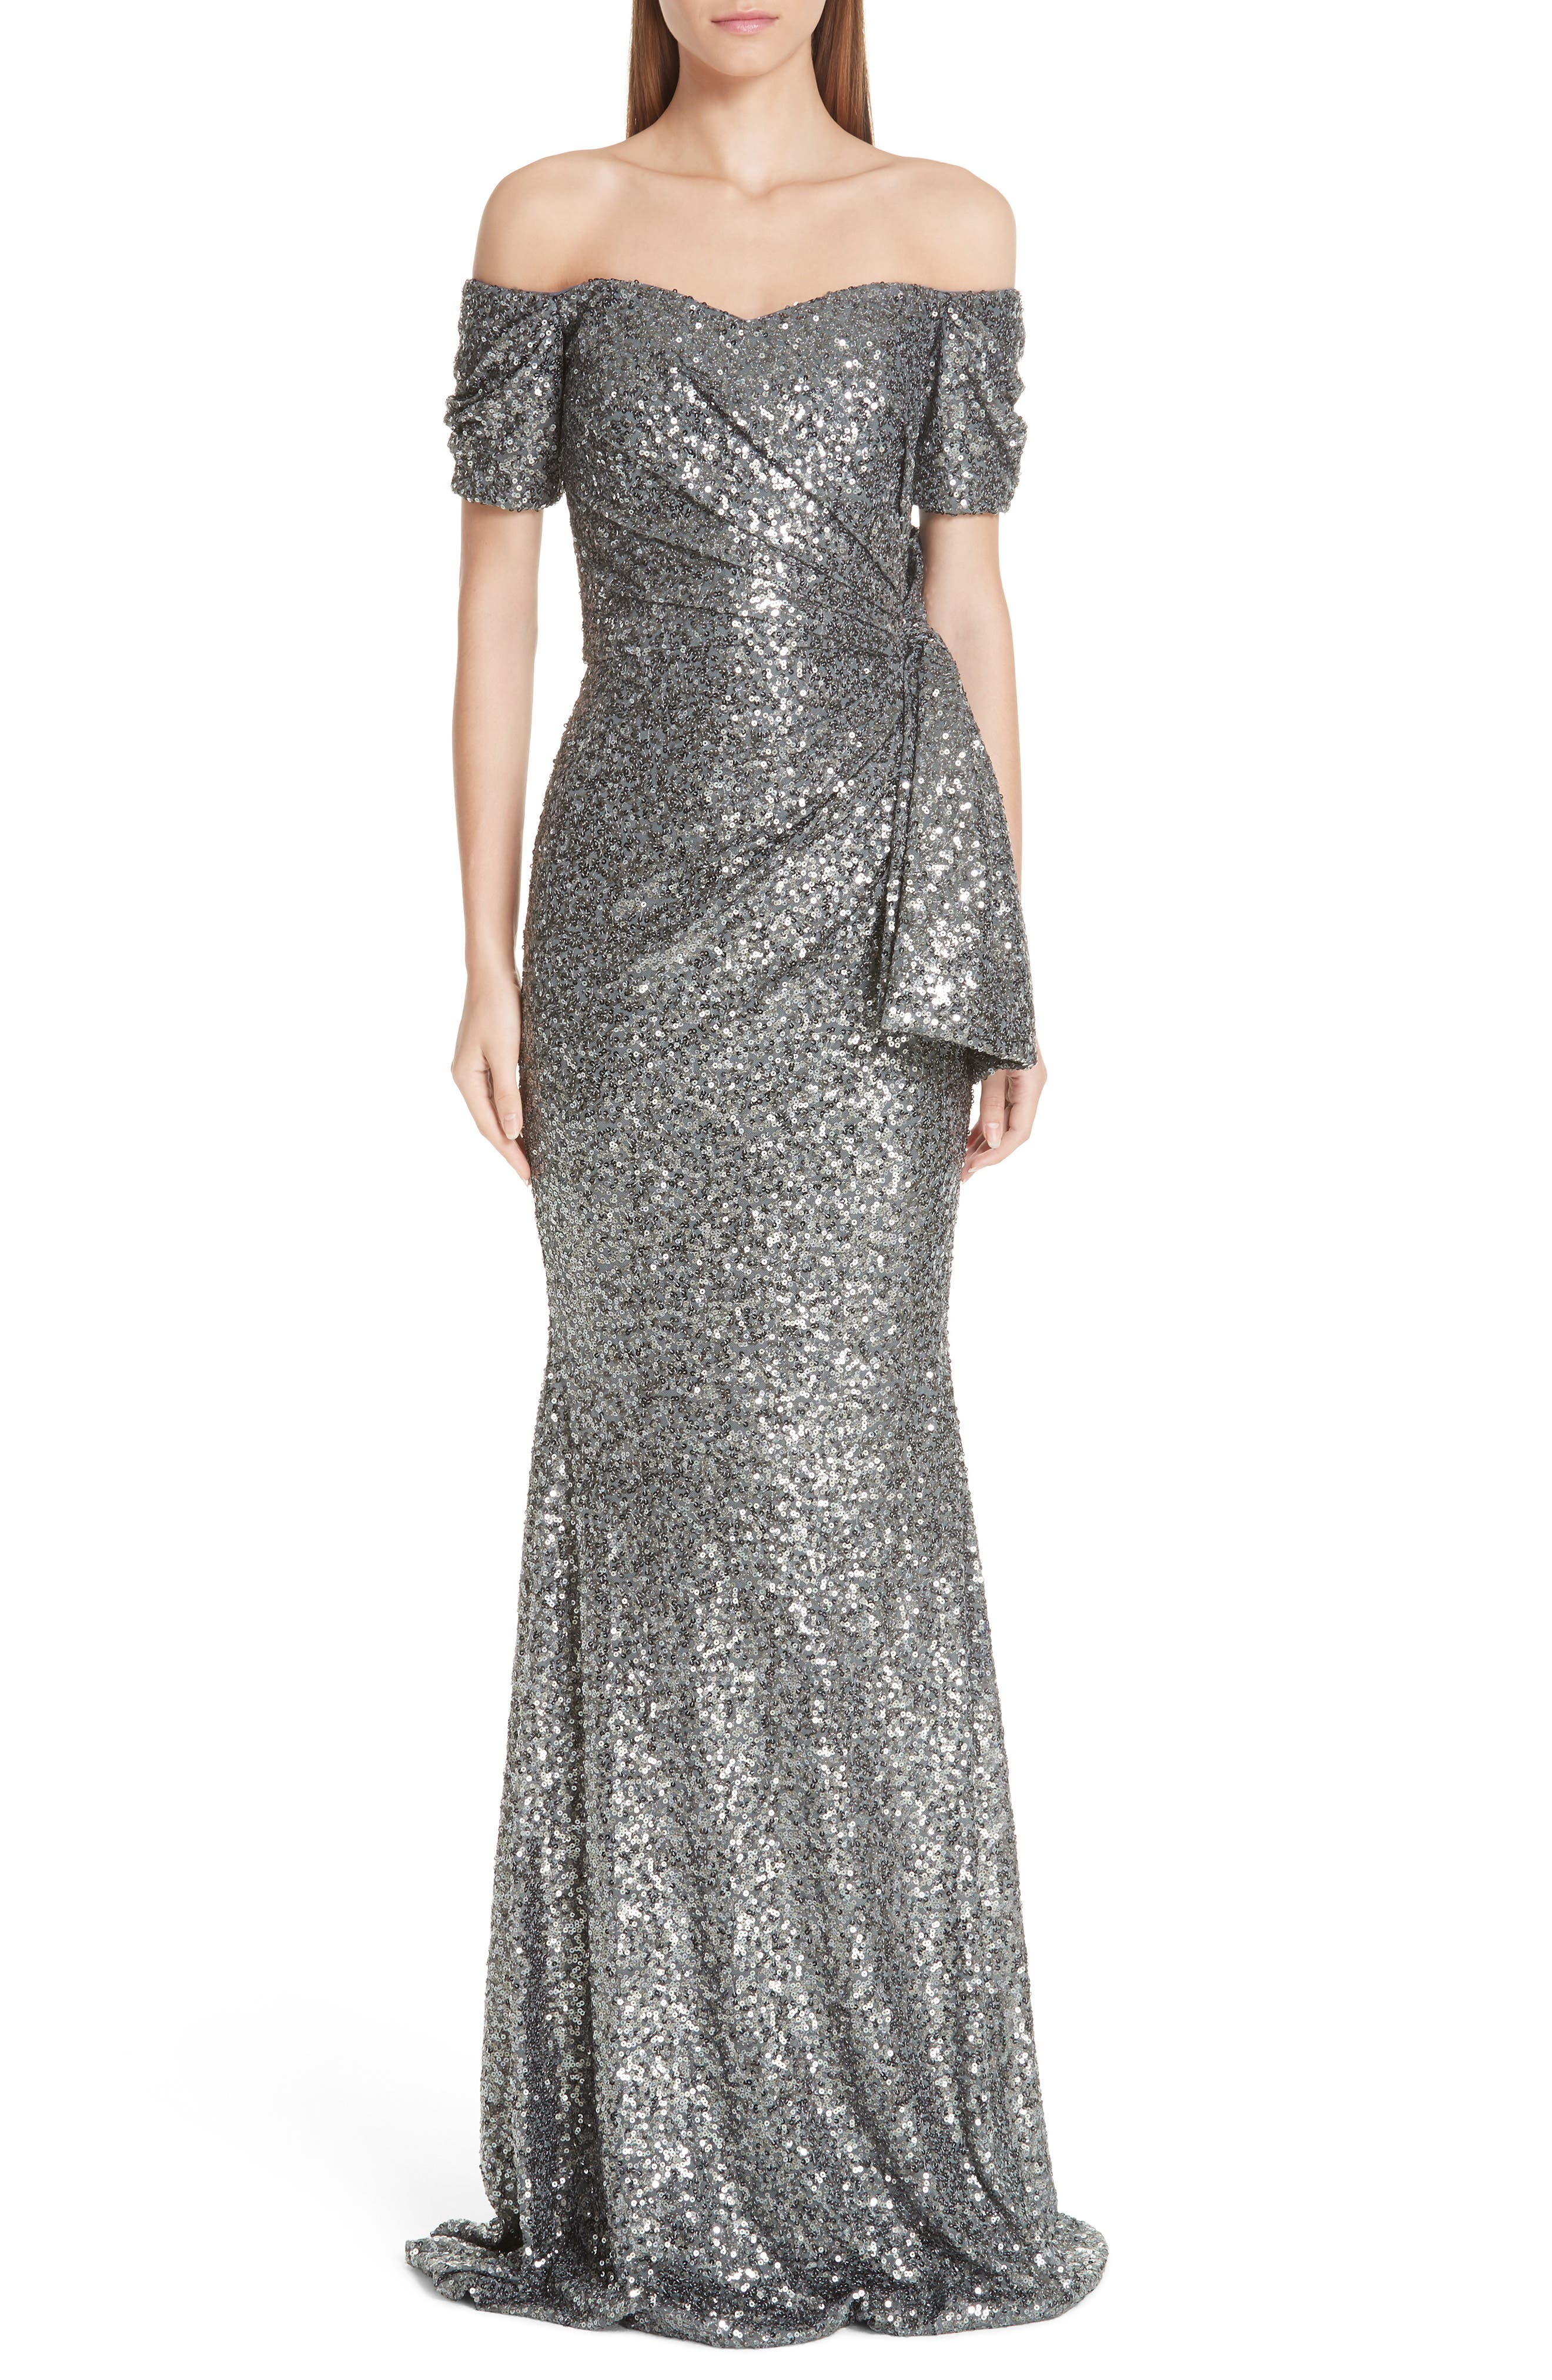 Badgley Mischka Cocktail Dress with Tulle